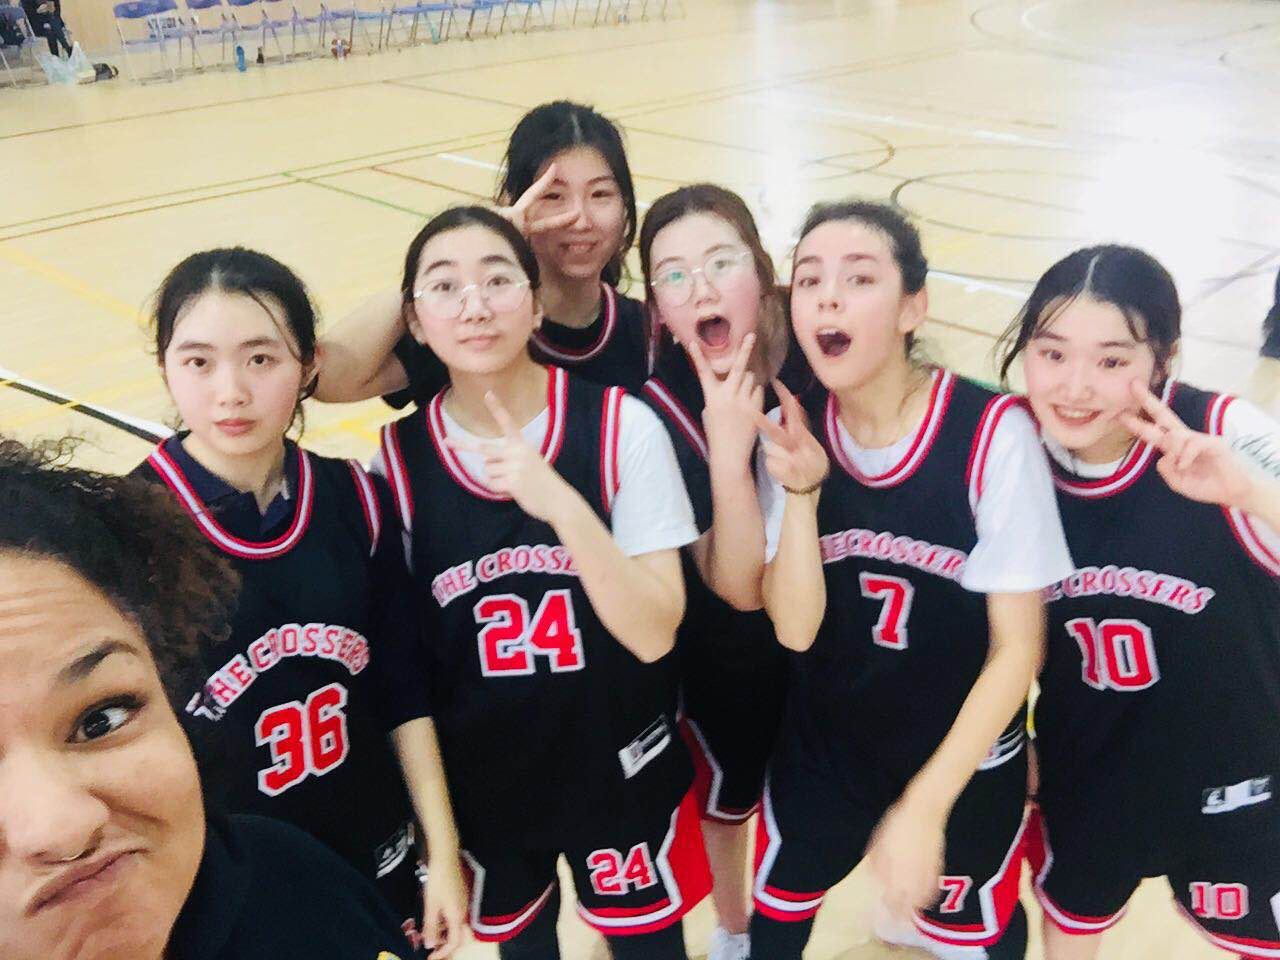 女子篮球队 Girls' Basketball Team